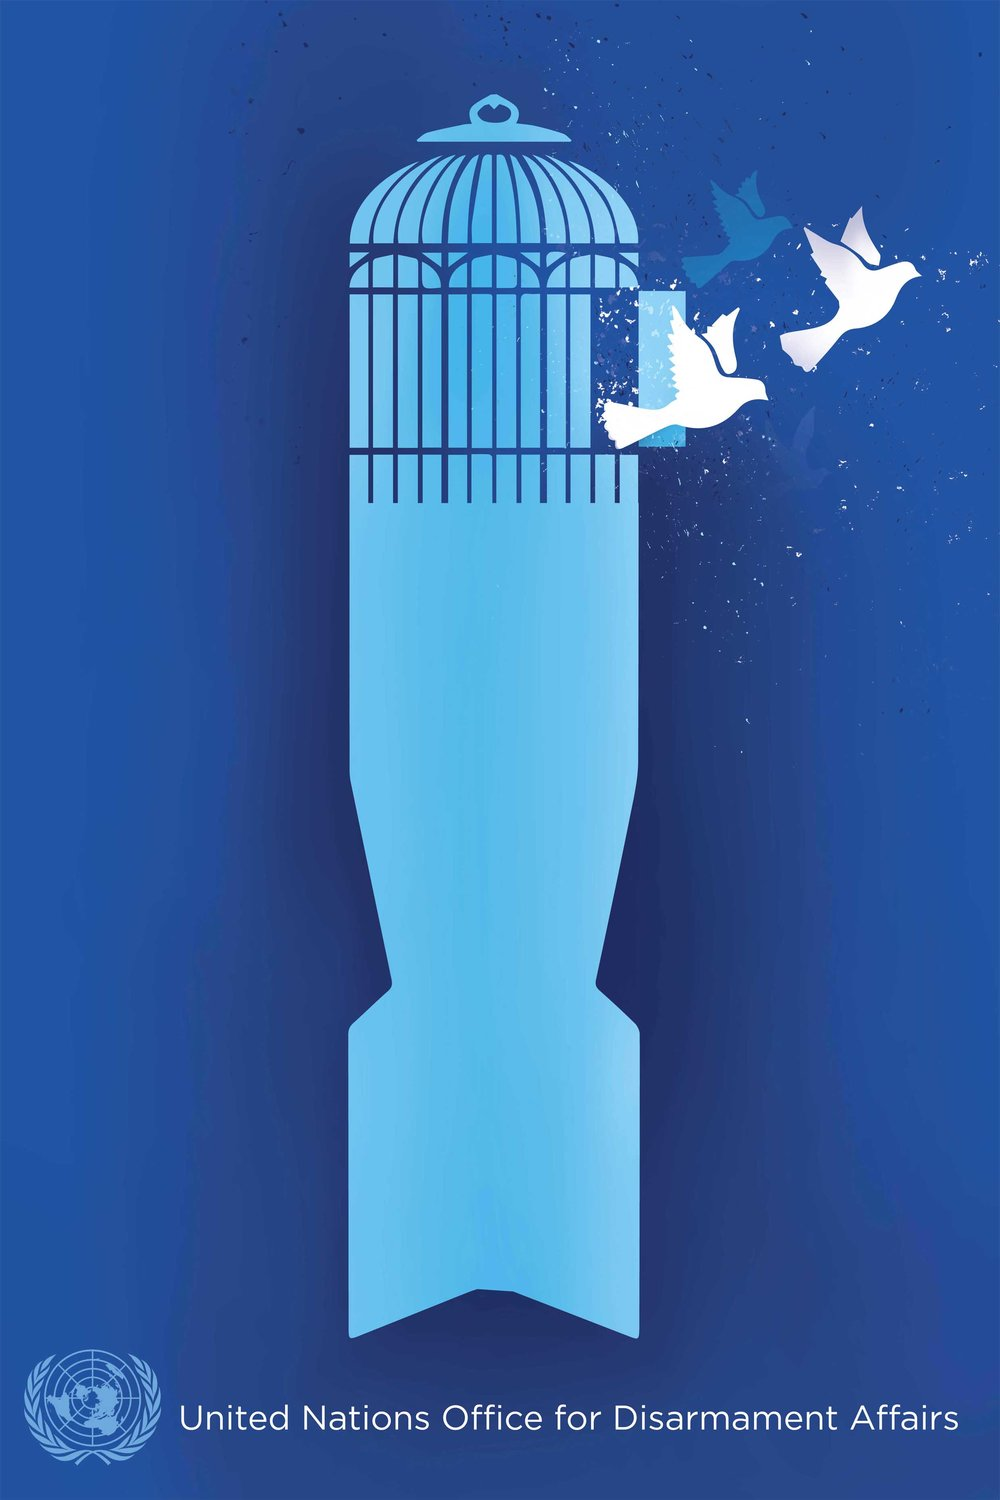 Break Free   The United Nations Office for Disarmament Affairs sponsored the UN Poster for Peace Contest, in commemoration of the 70th anniversary of the first UN General Assembly resolution, which established the goal of eliminating nuclear weapons and all other weapons of mass destruction. The contest aimed to raise awareness for the need for nuclear disarmament and to inspire citizens across the globe to add their voices, and use their artistic talents, to promote a world free of nuclear weapons.